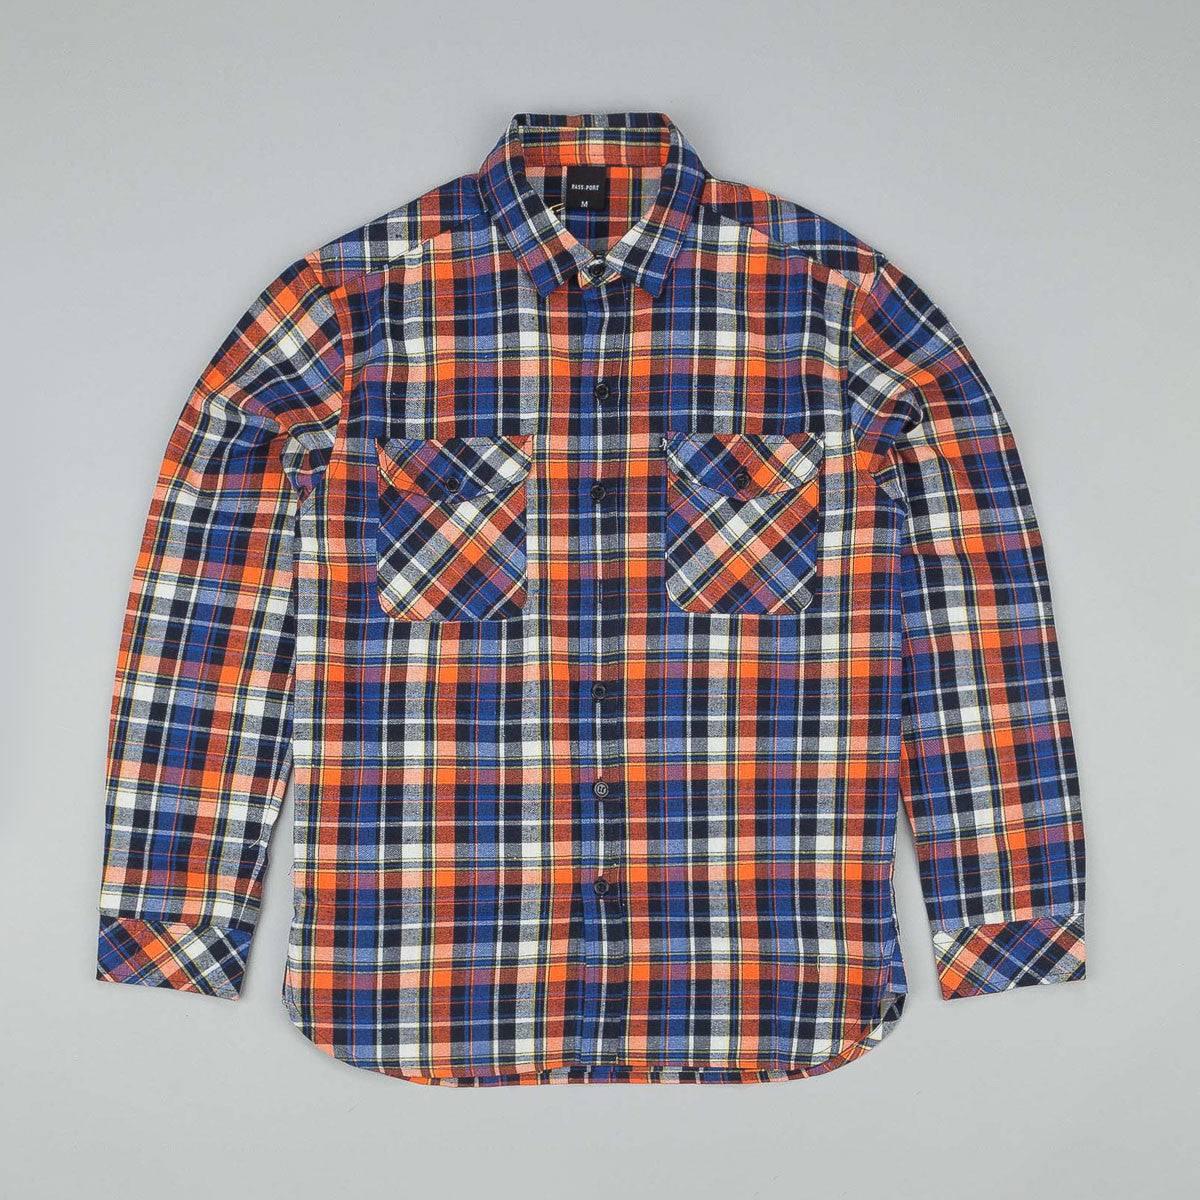 Pass Port Worker's Flannelette Shirt - Orange / Navy